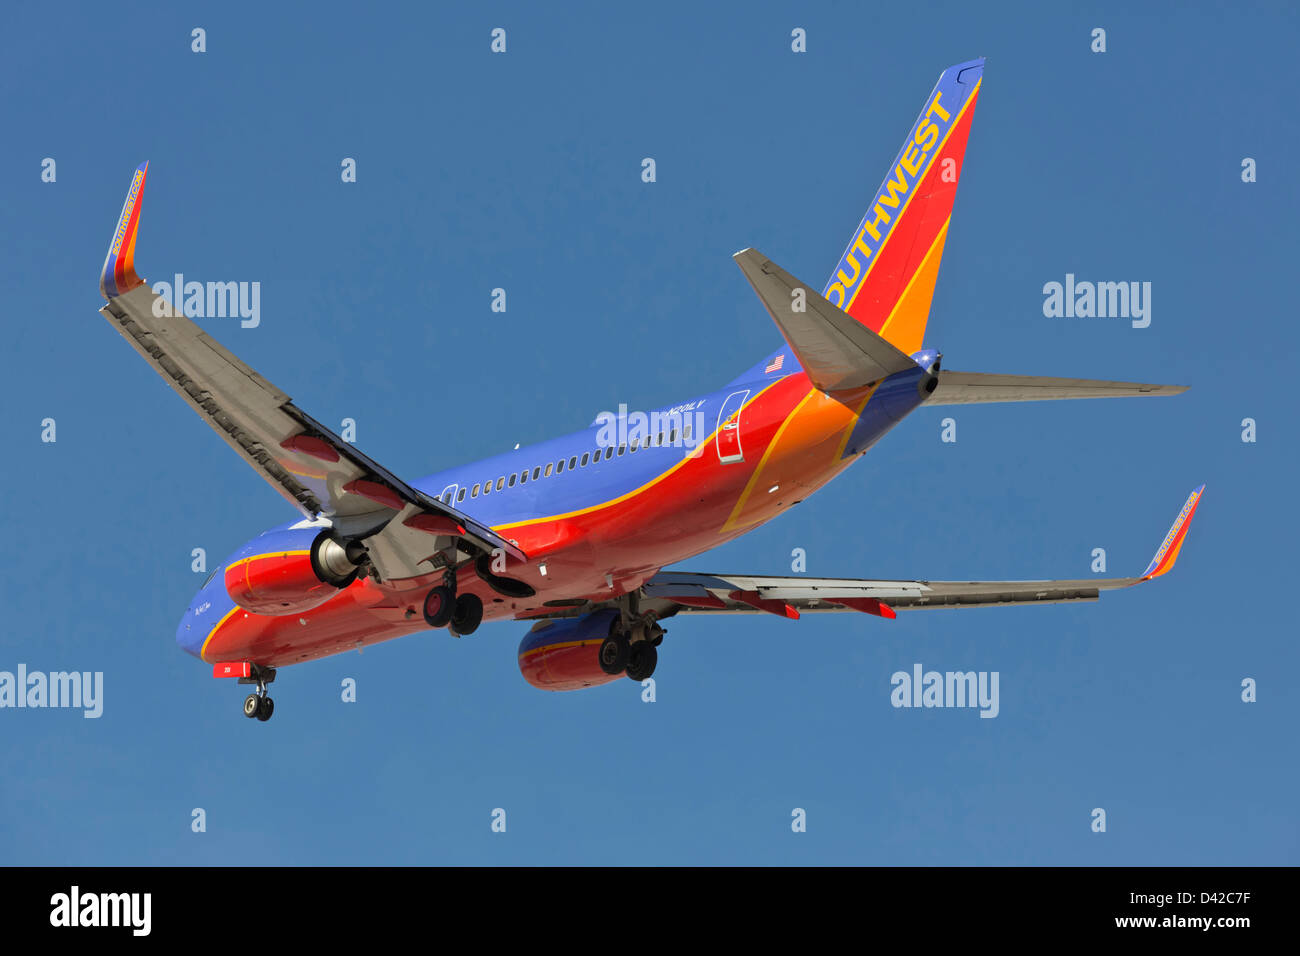 A Boeing 737 of Southwest airlines on final approach - Stock Image